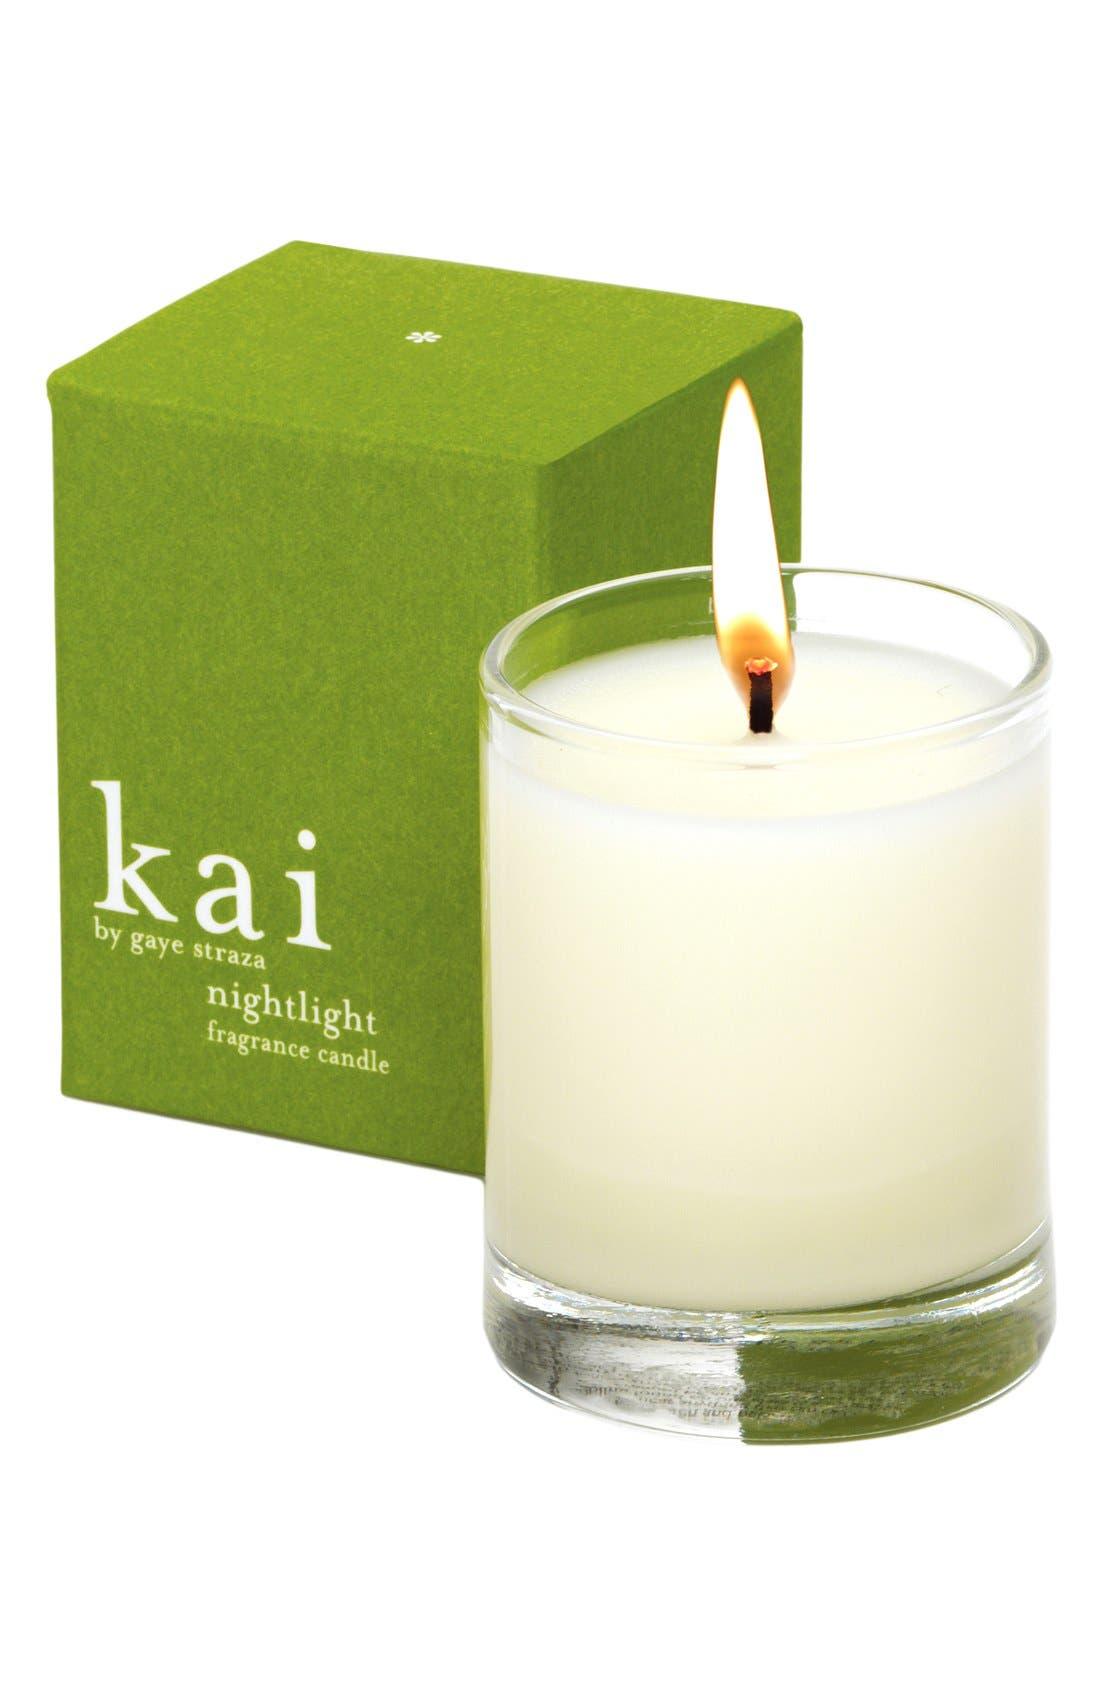 'Nightlight' Fragrance Candle,                             Main thumbnail 1, color,                             No Color